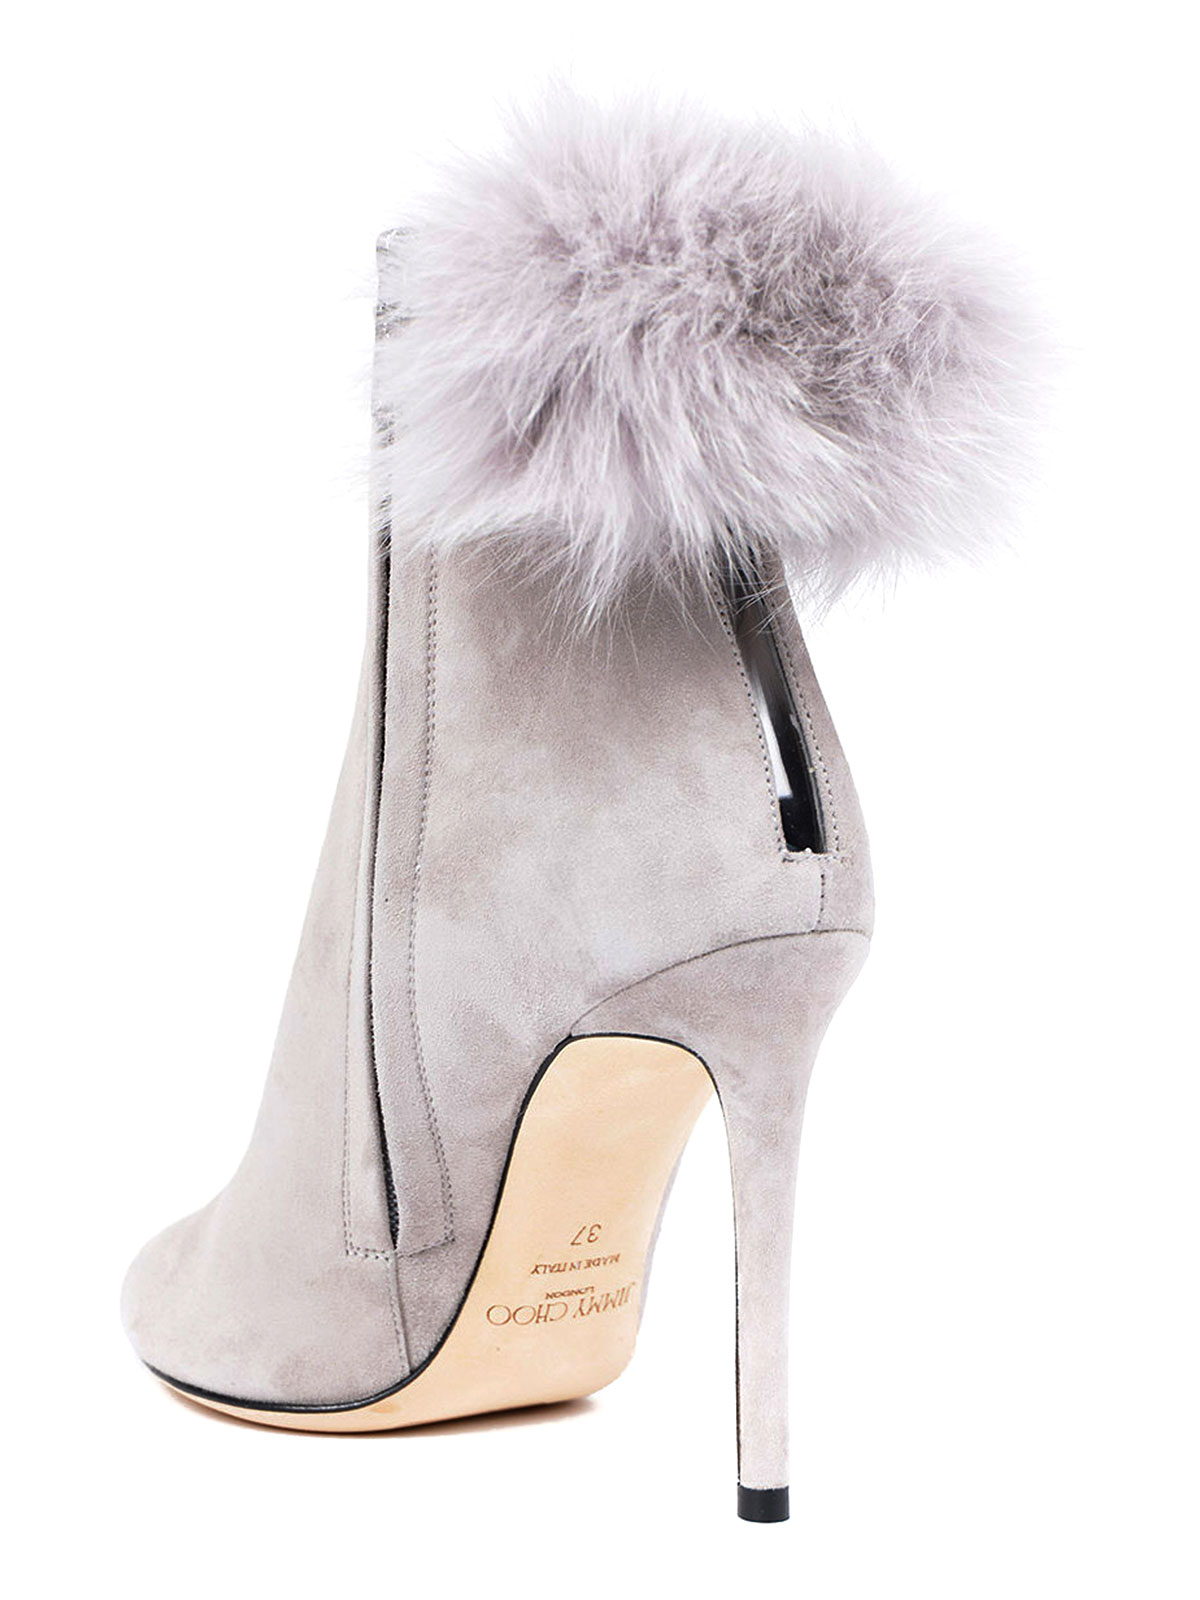 98a23f799fd6 Jimmy Choo - Tesler fur pom pom suede booties - ankle boots ...